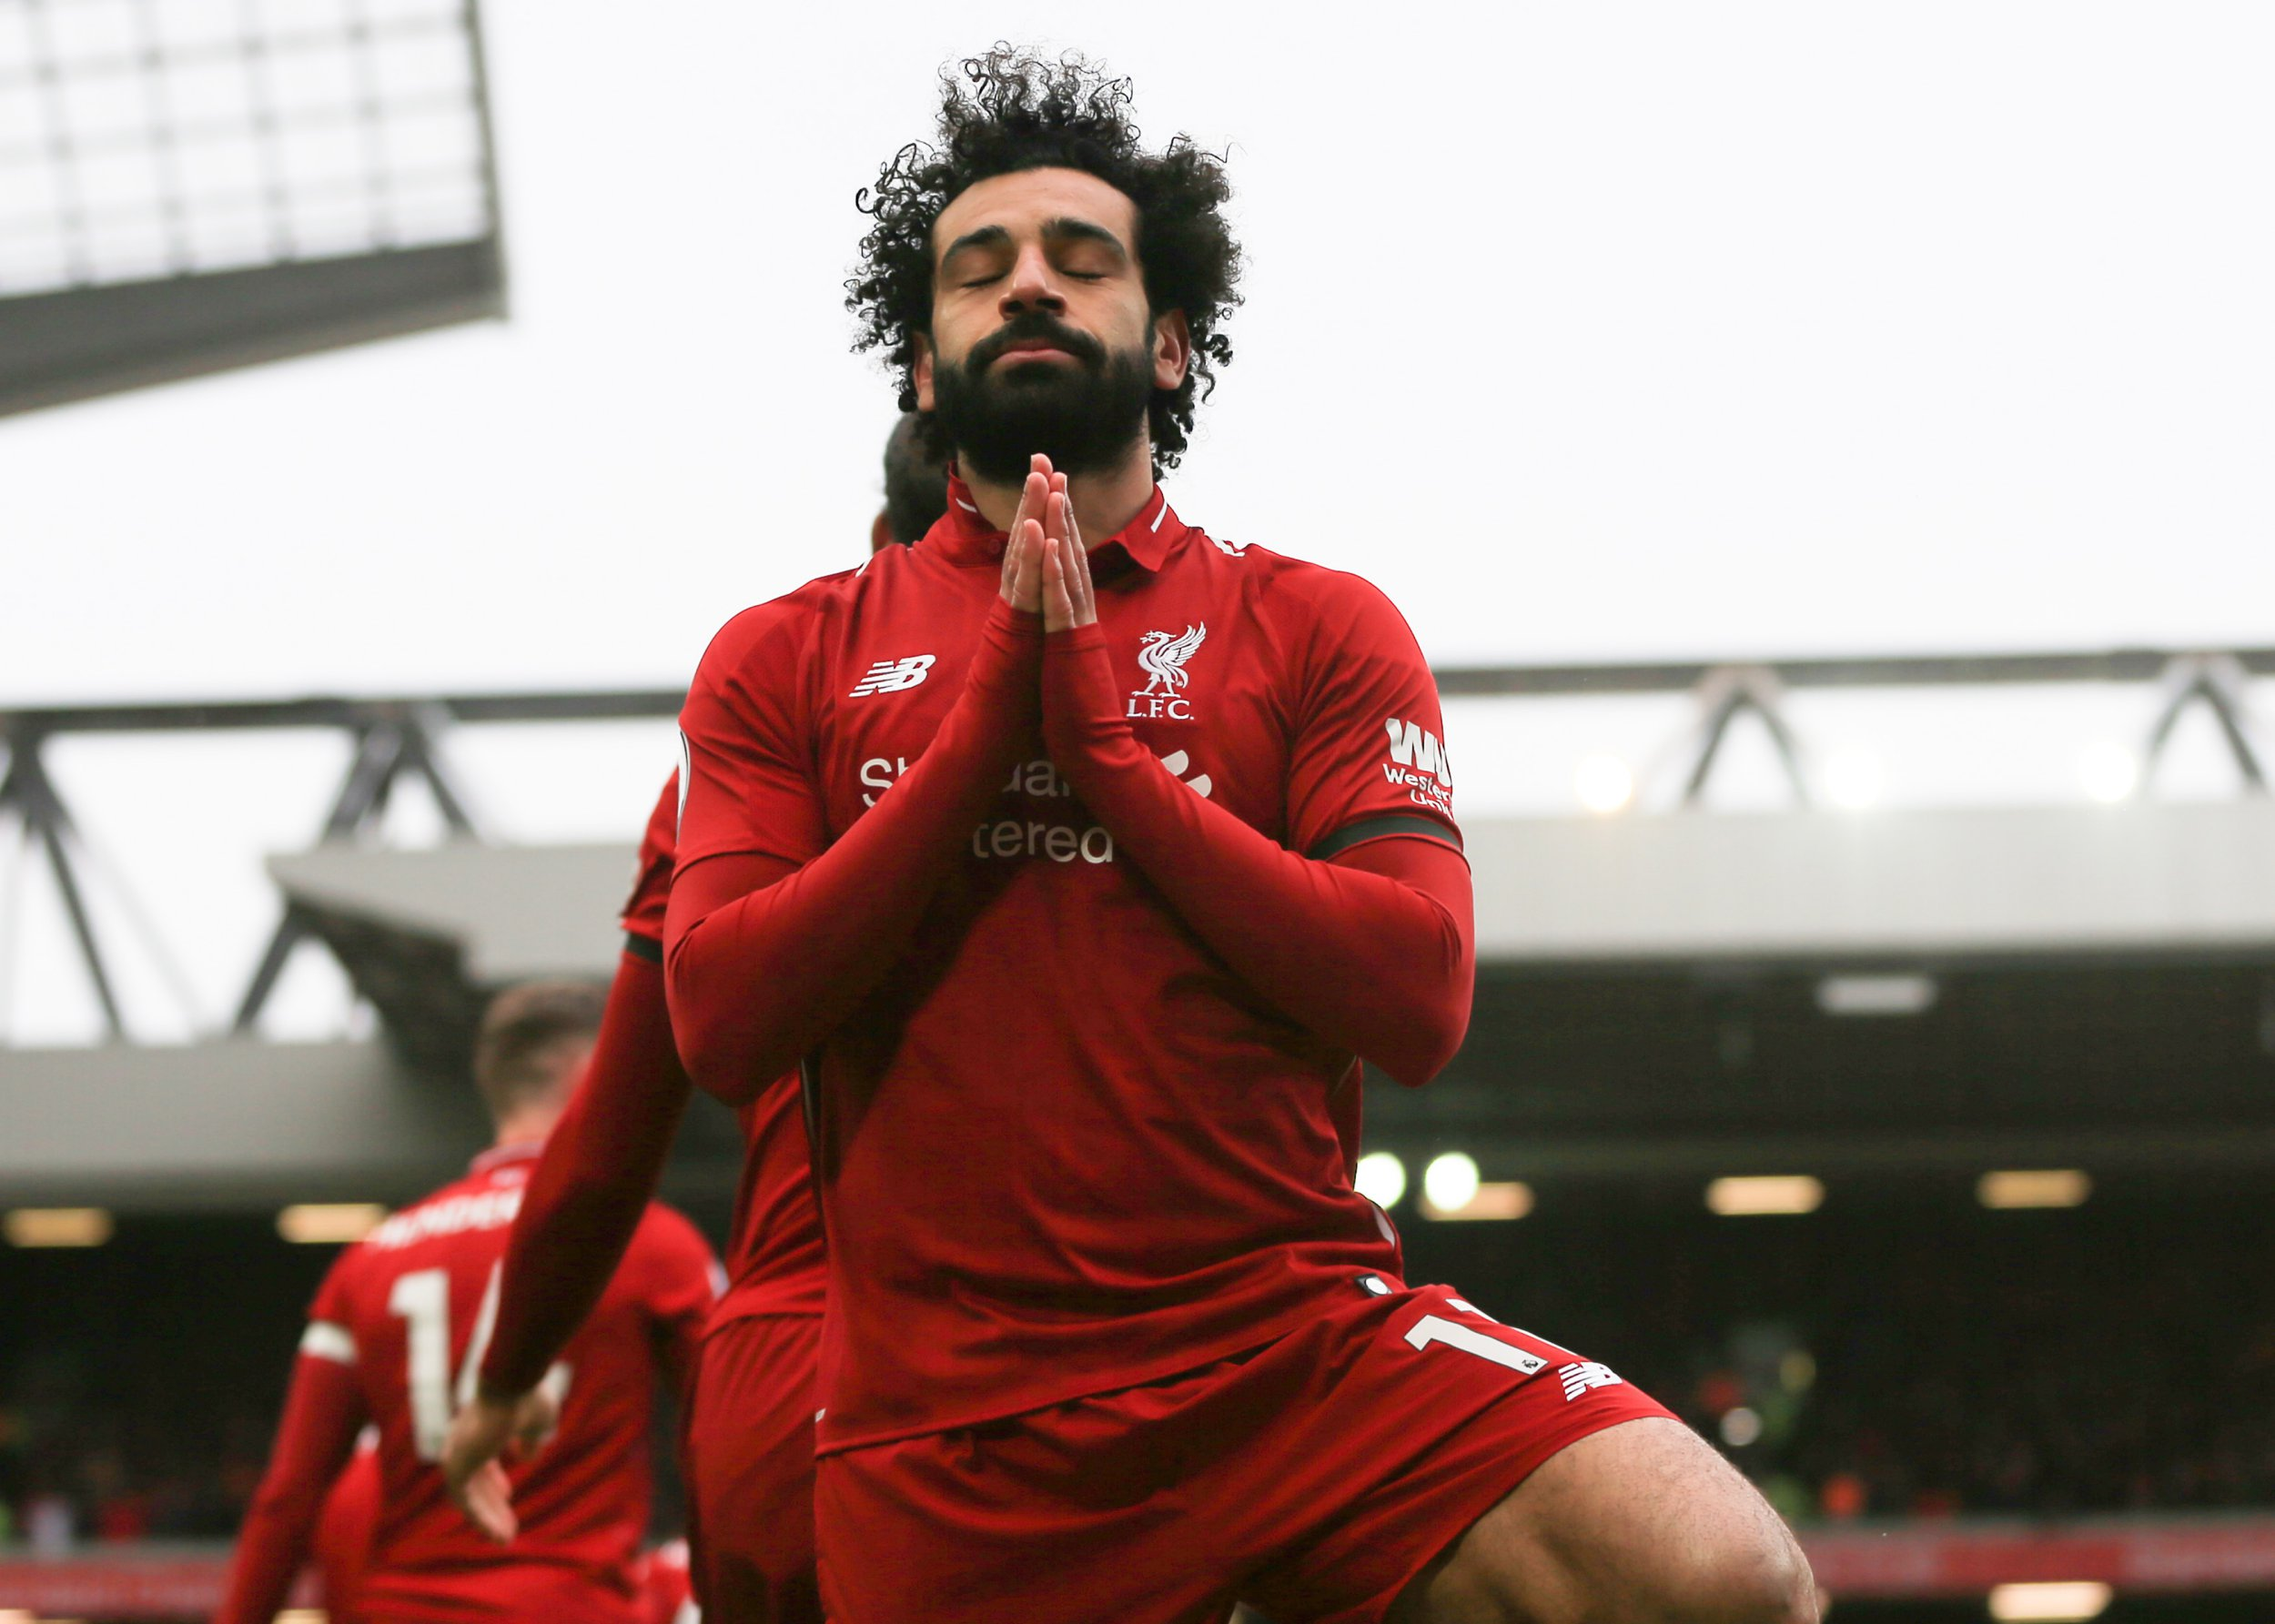 14th April 2019, Anfield, Liverpool, England; EPL Premier League football, Liverpool versus Chelsea; Mohamed Salah of Liverpool celebrates scoring his team's second goal in minute 53 (photo by David Blunsden/Action Plus via Getty Images)